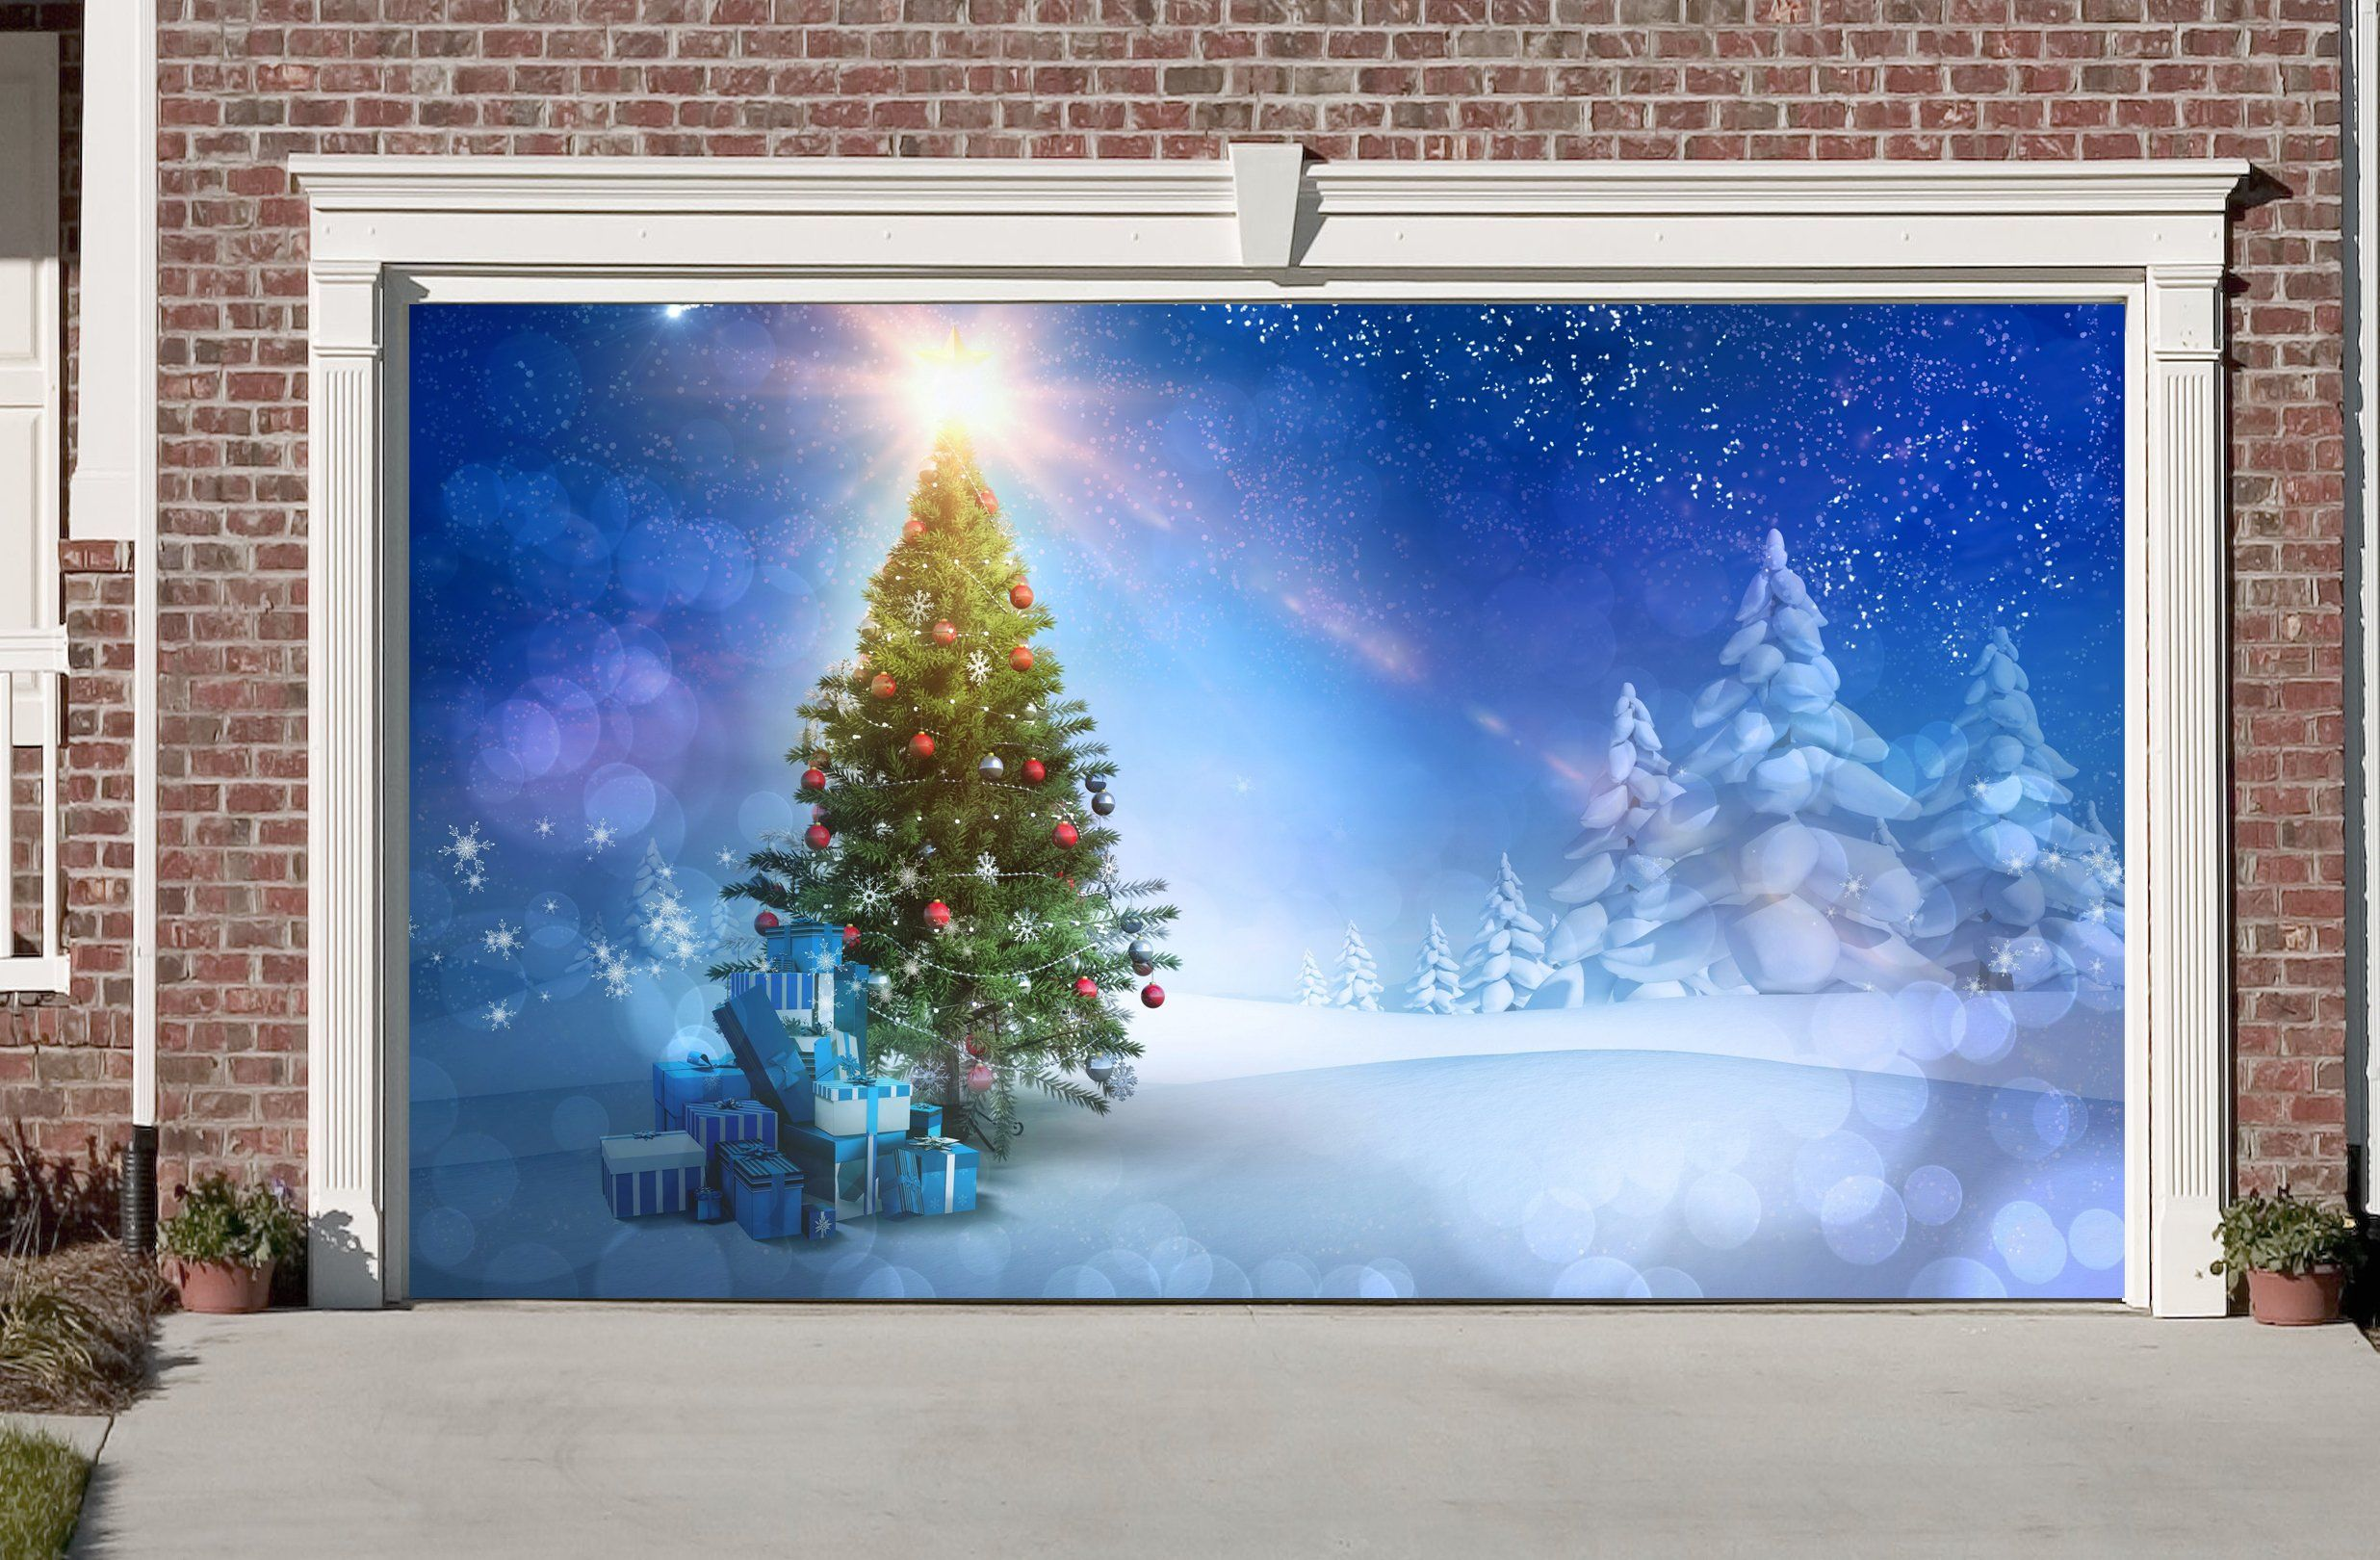 Christmas Tree Garage Door Covers 3d Banners Outside House Decorations Billboard GD36